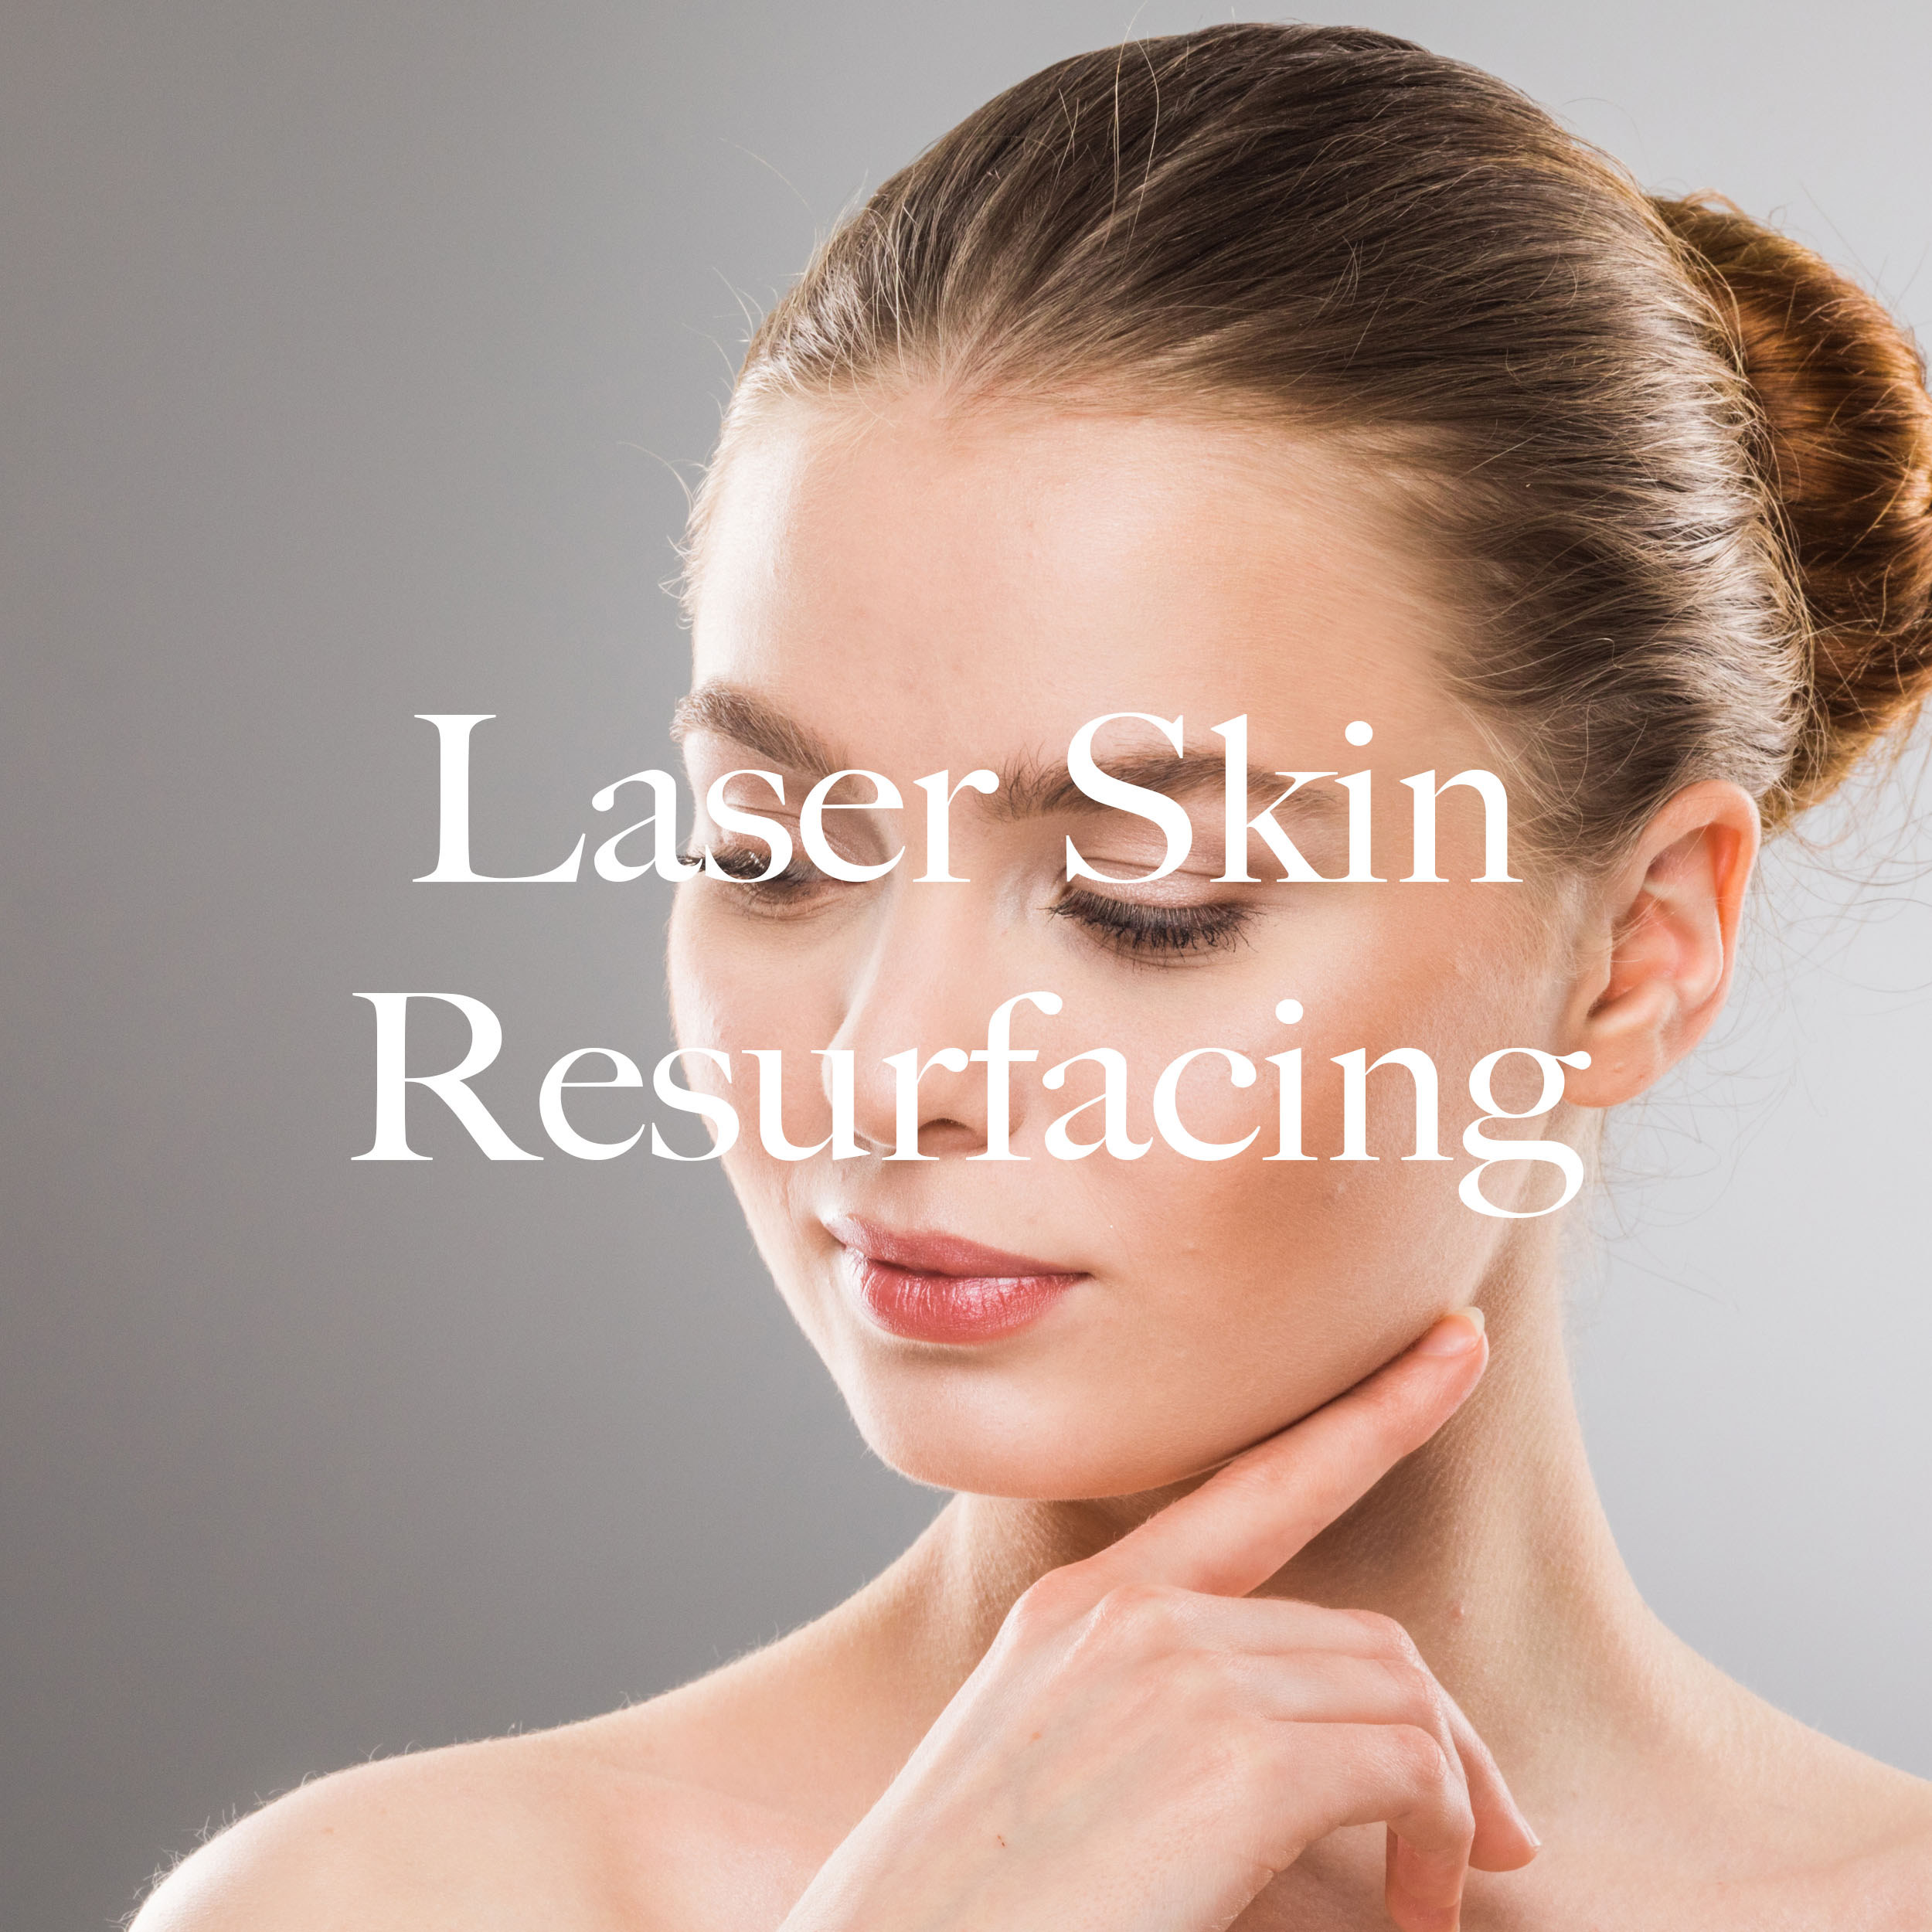 laserskinresurfacing.jpg